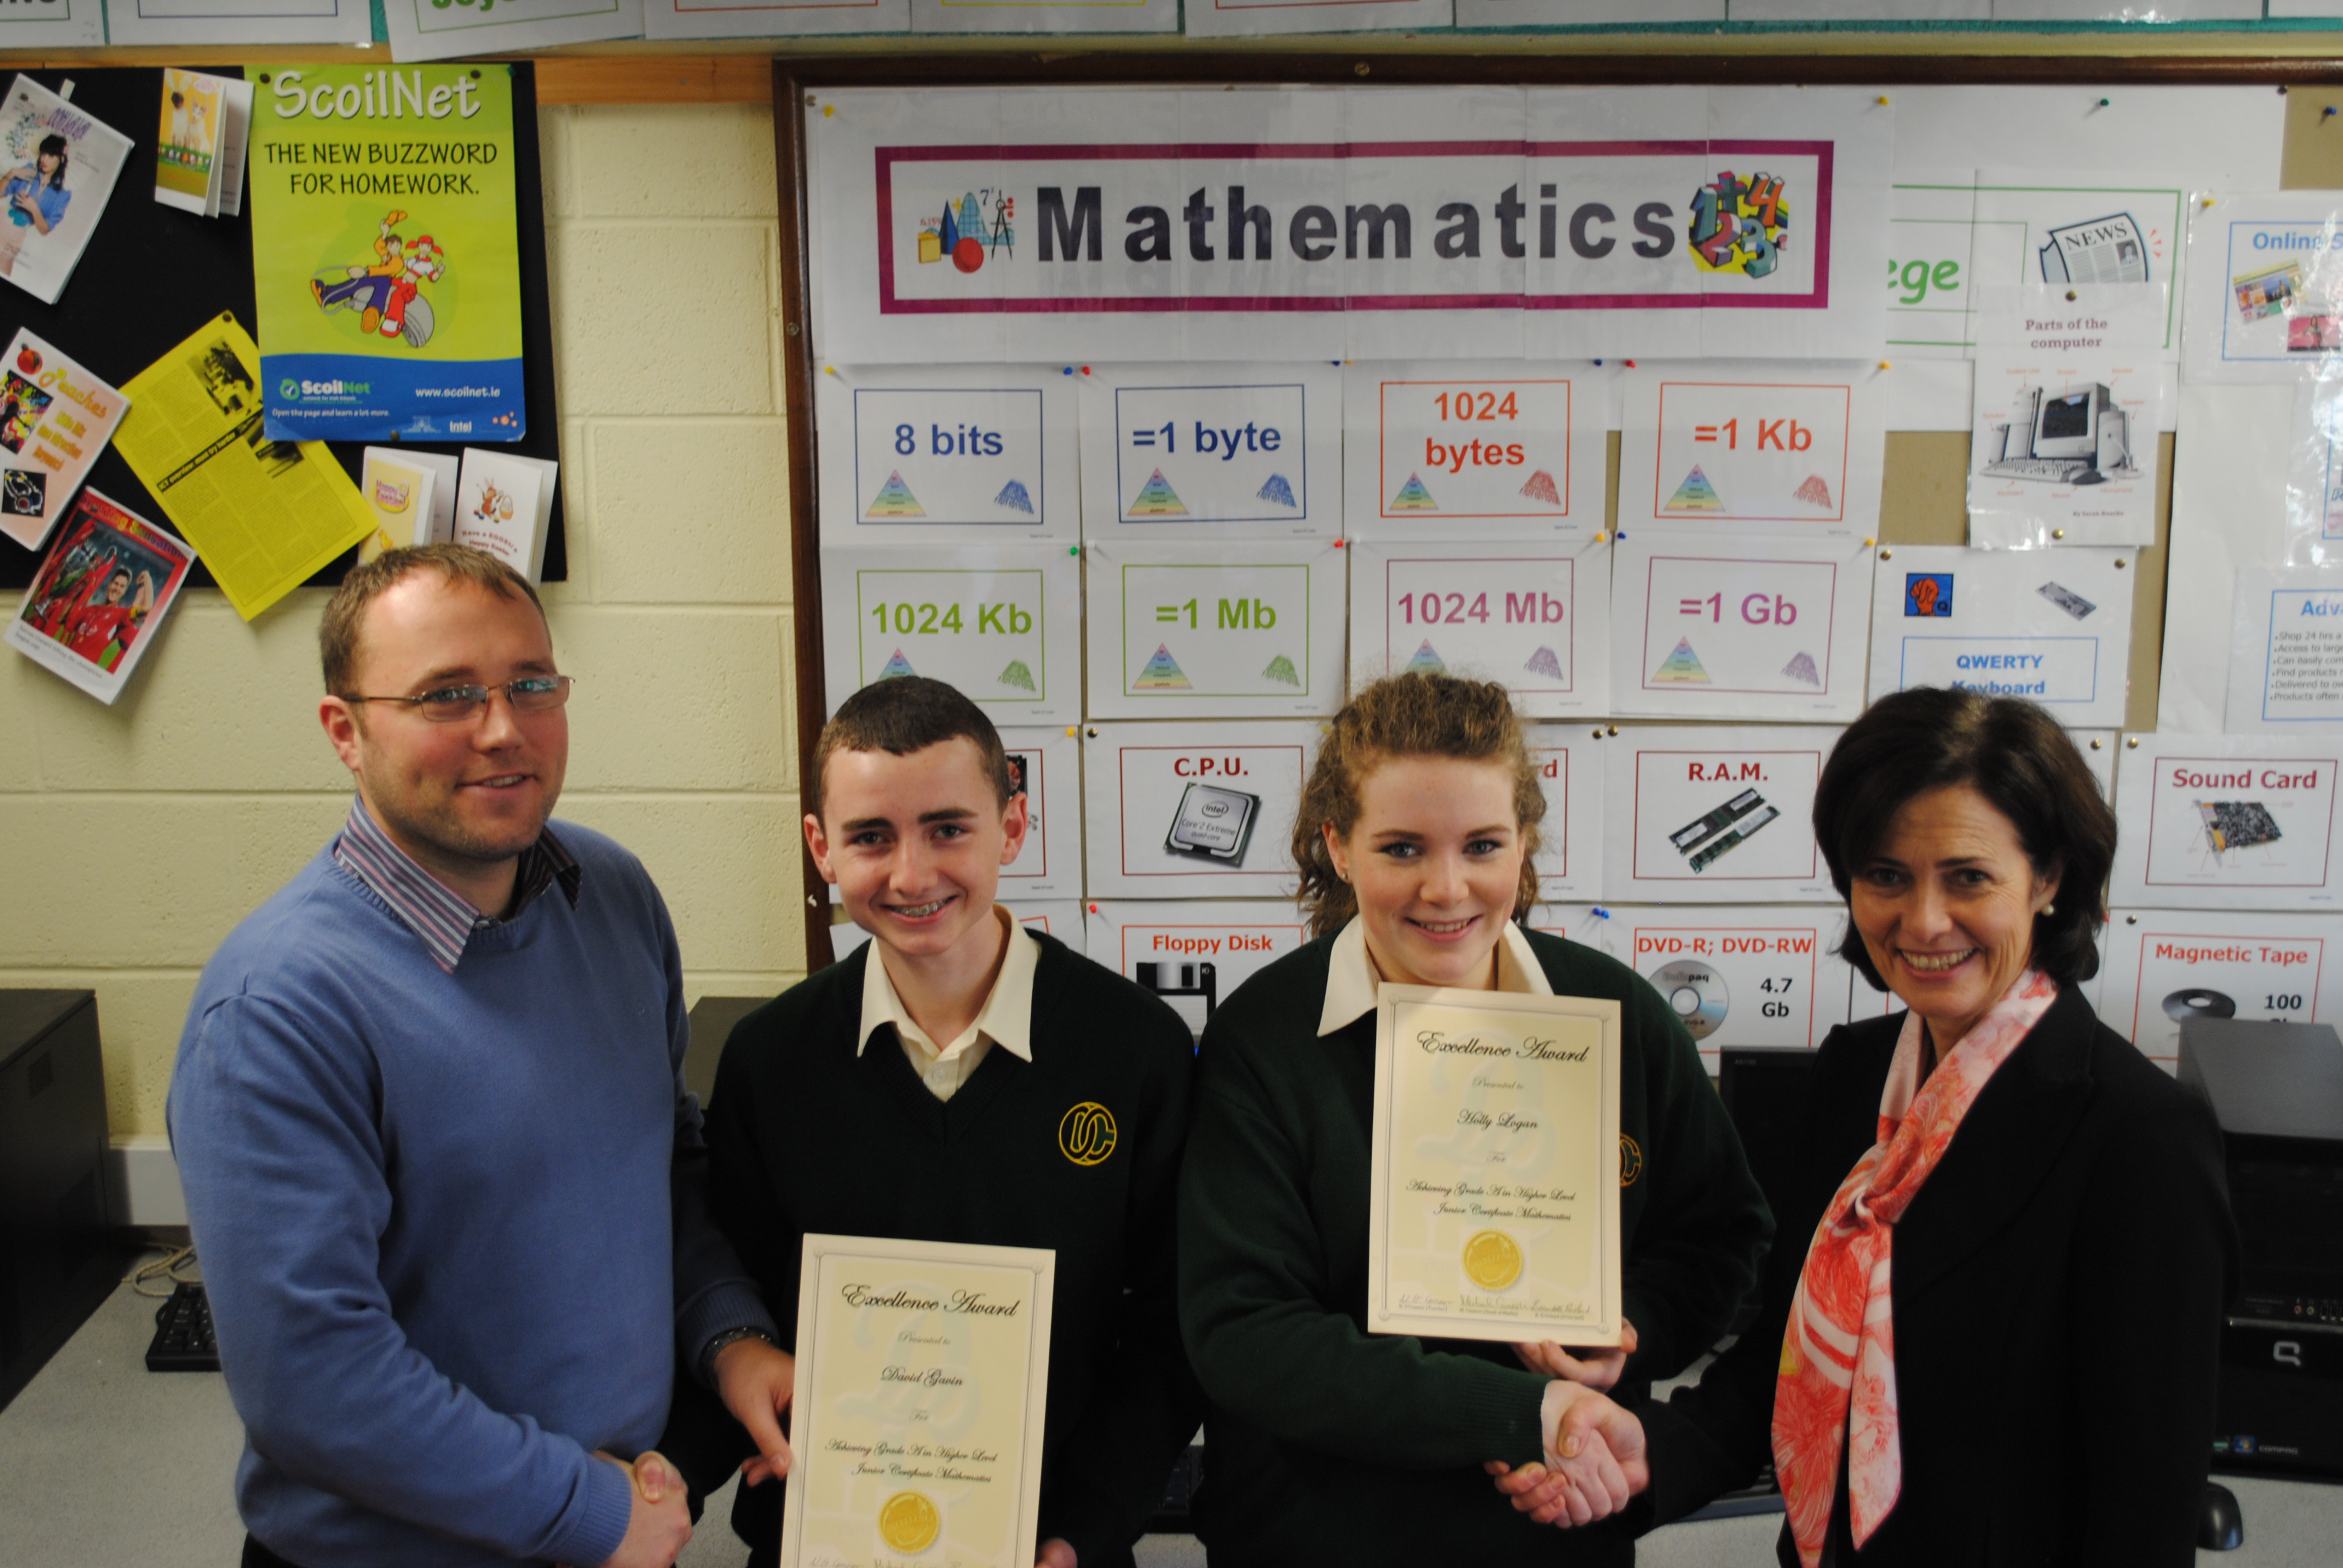 Students David Gavin and Holly Logan received an A in Junior Certificate Honours Mathematics, were presented with Certificates of Achievement from Mr. Niall O'Connor, Maths teacher and Ms. Bernie Rowland, Principal Davitt College.